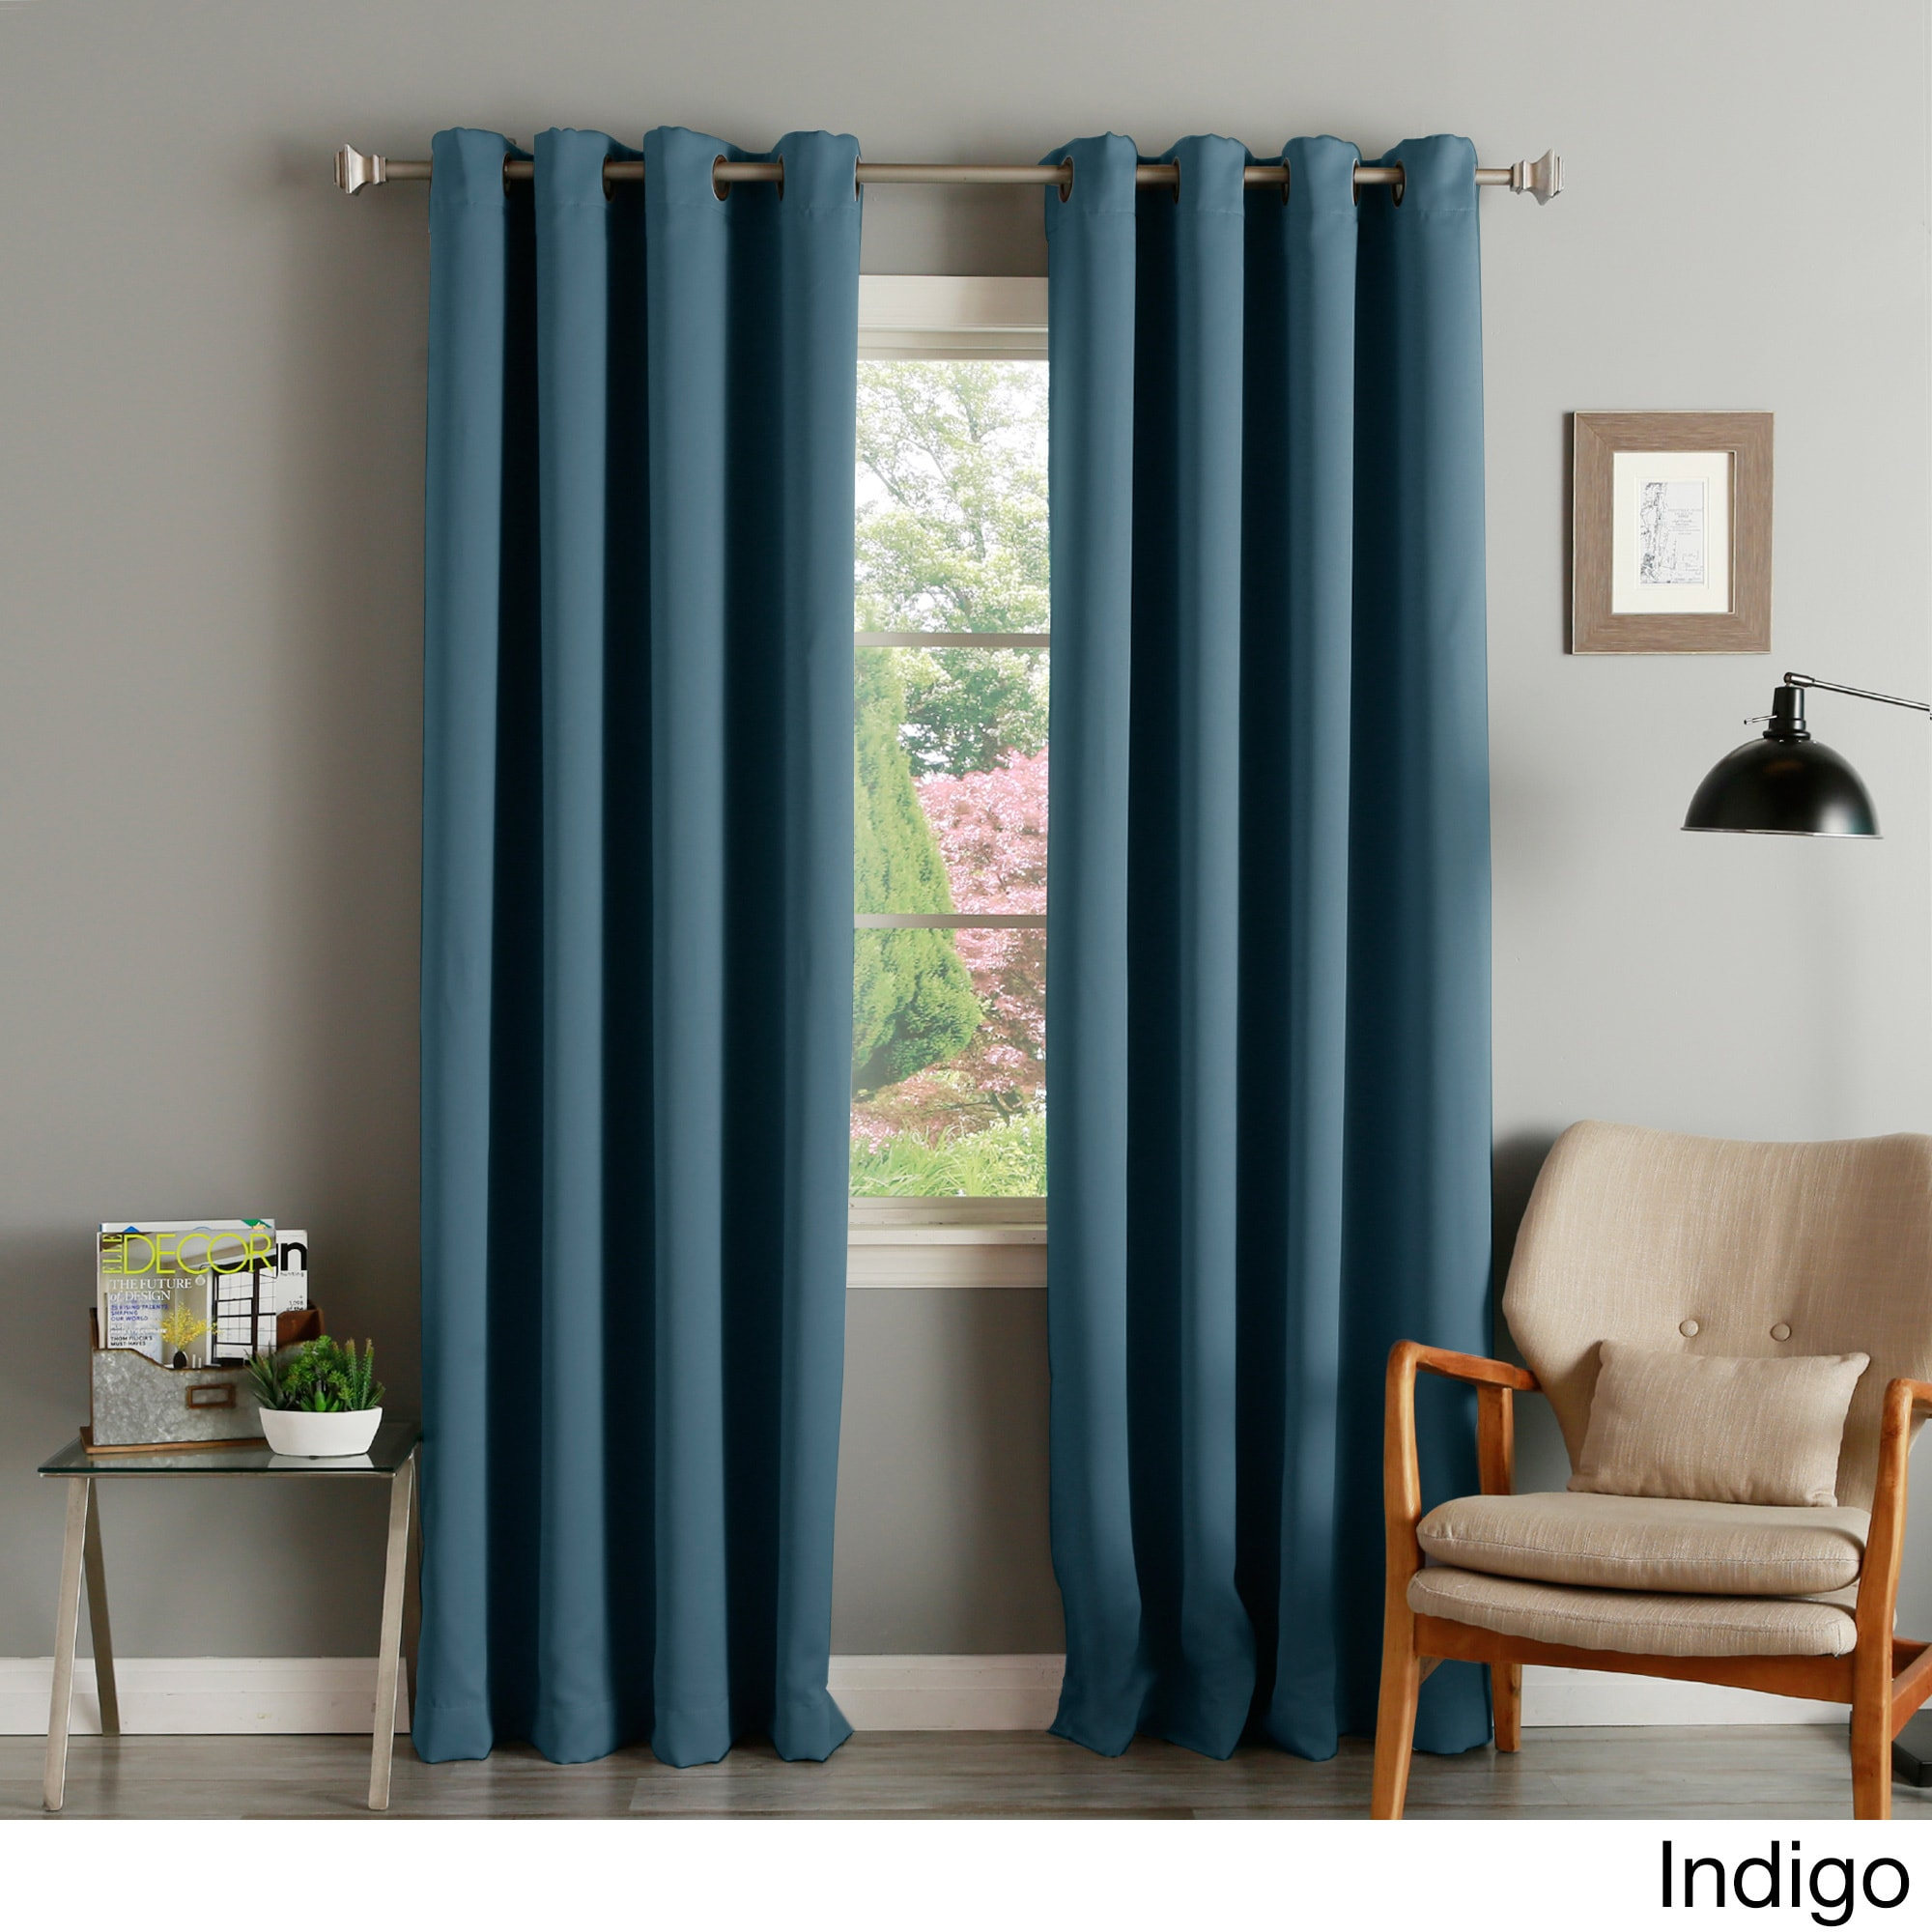 Aurora Home Thermal Insulated Blackout Grommet Top Curtain Panel Pair -  Free Shipping Today - Overstock.com - 16693638